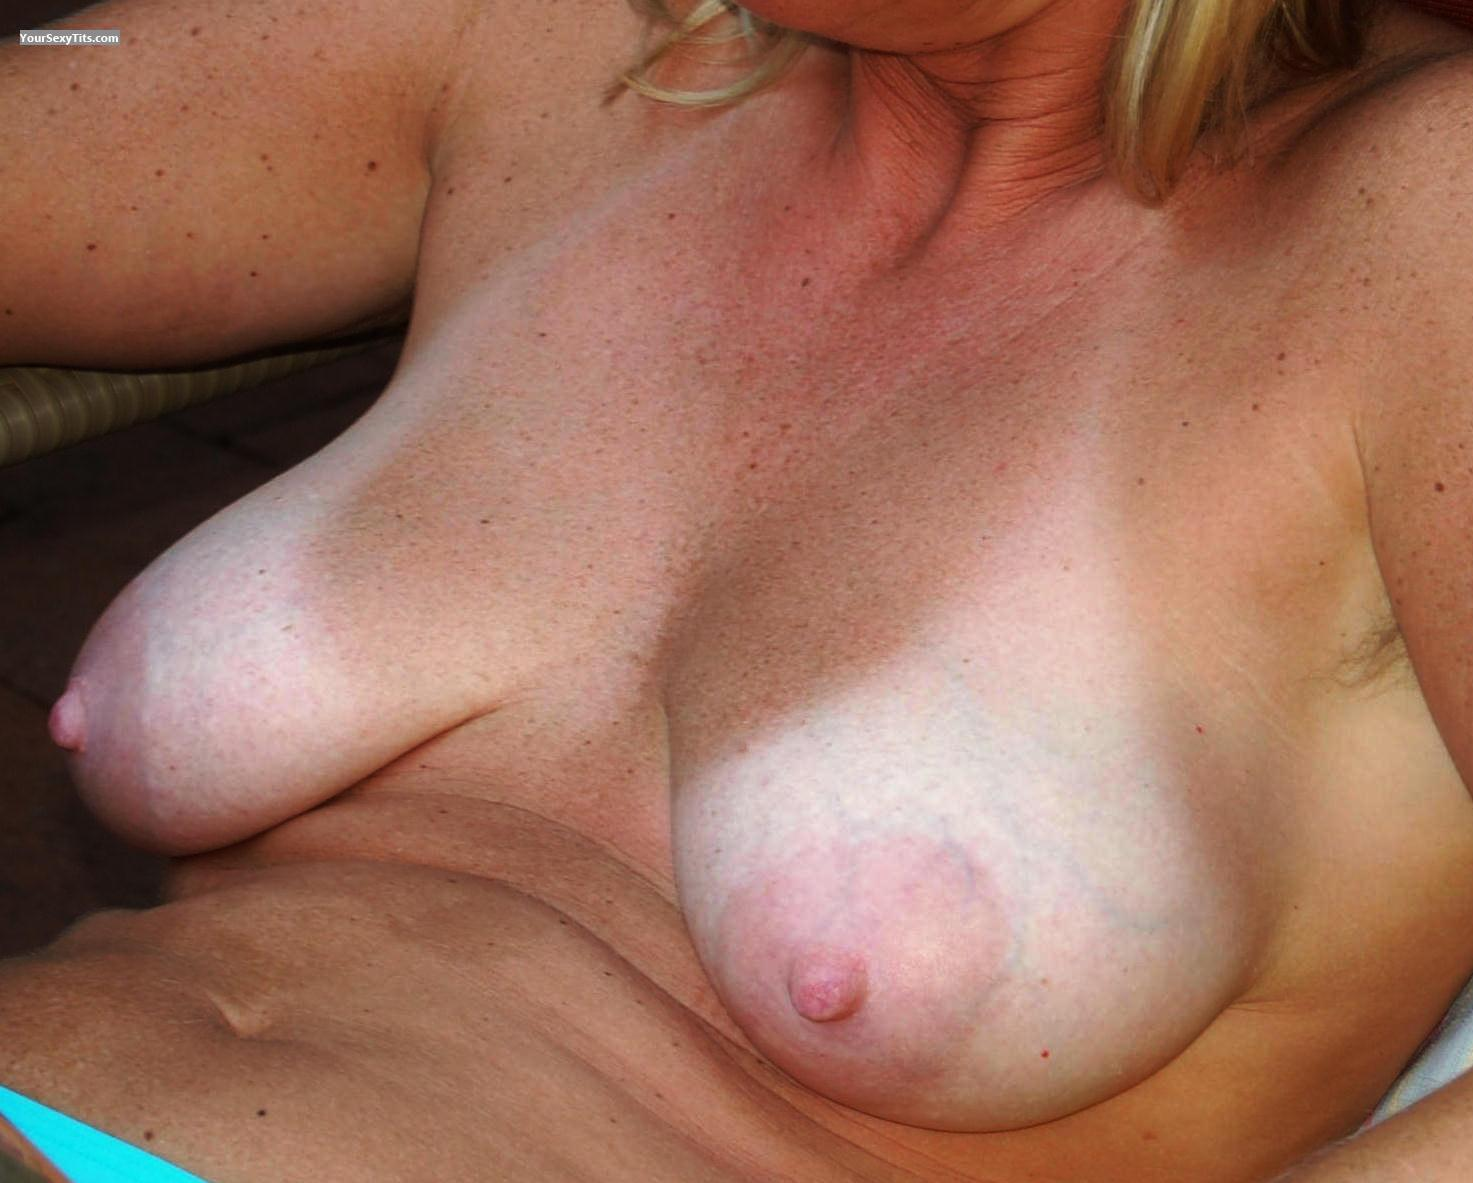 Tit Flash: Big Tits - Blondie from Germany